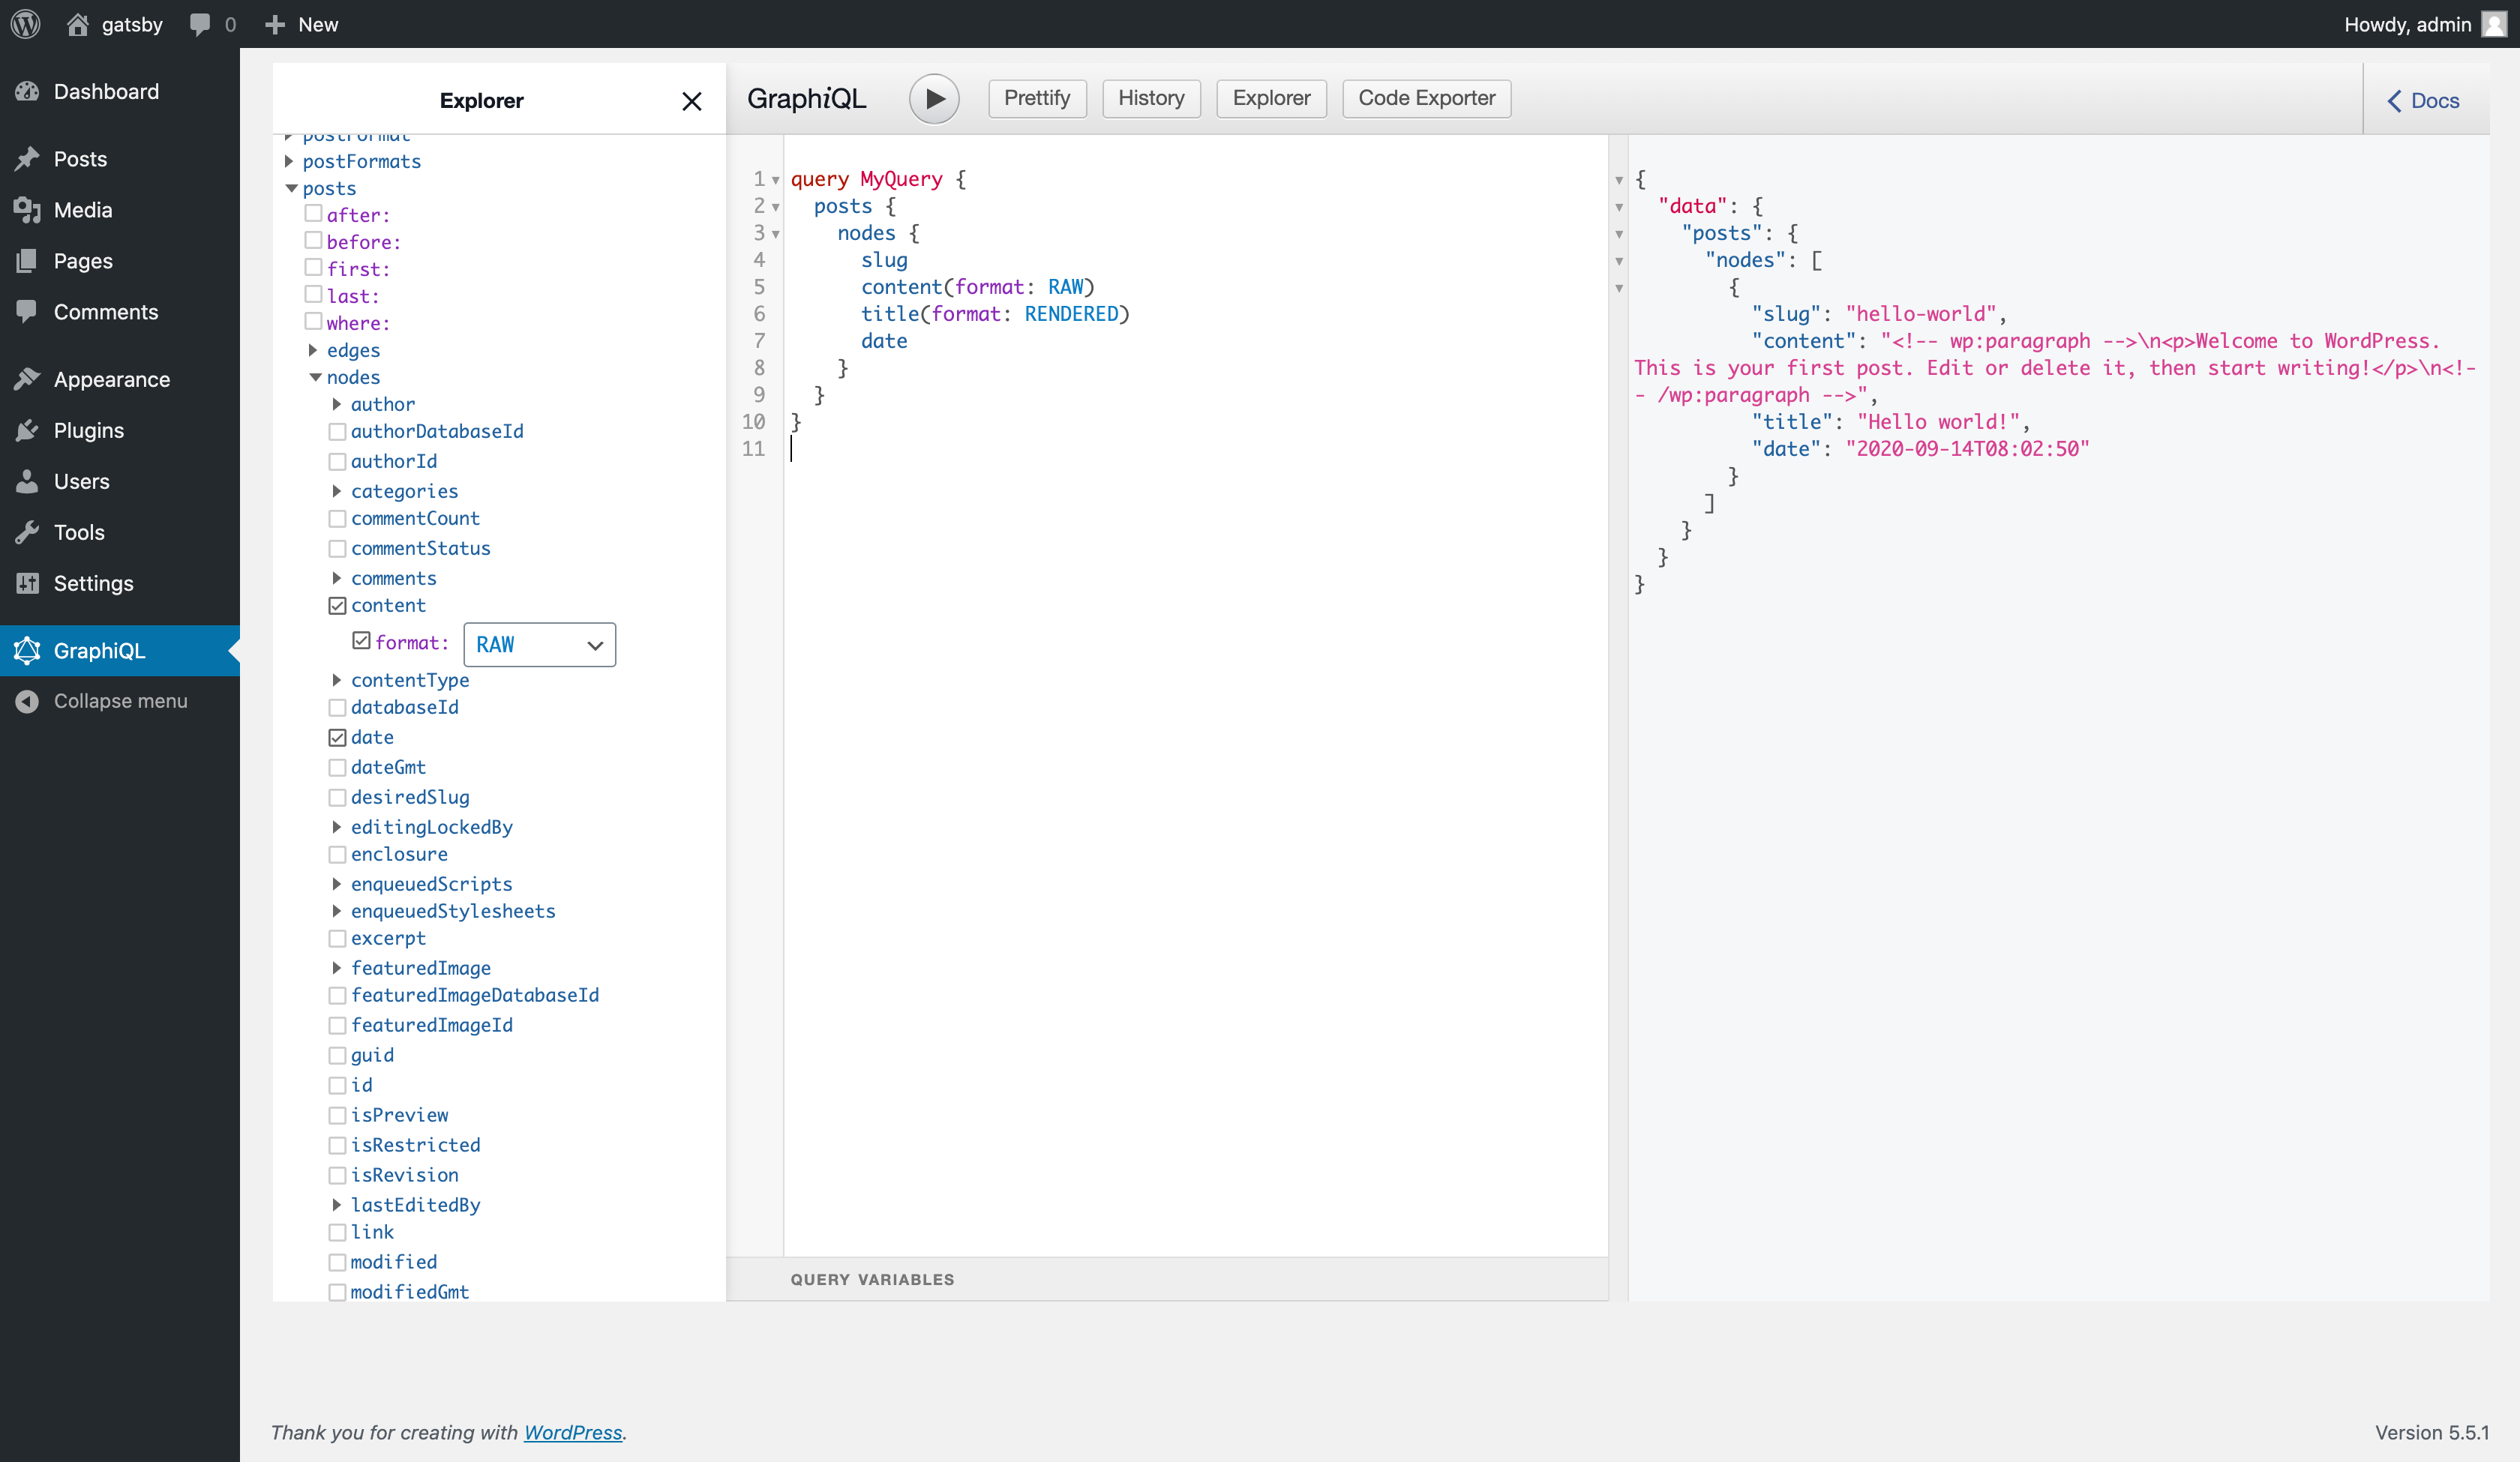 This is the interactive GraphiQL playground after you have installed it in your WordPress dashboard.